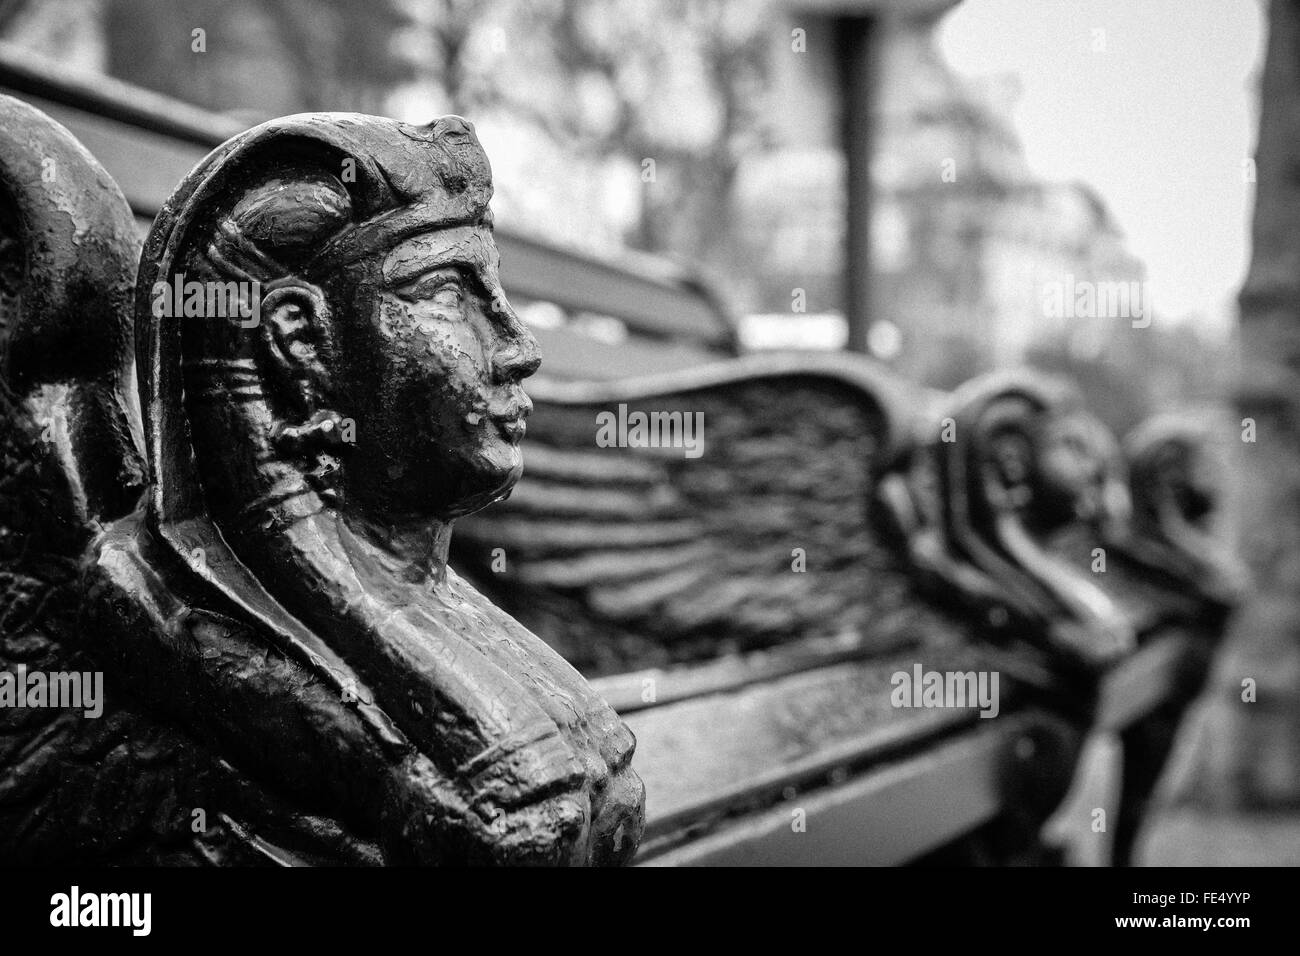 Close-Up Side View Of Effigy Bench Against Blurred Background - Stock Image